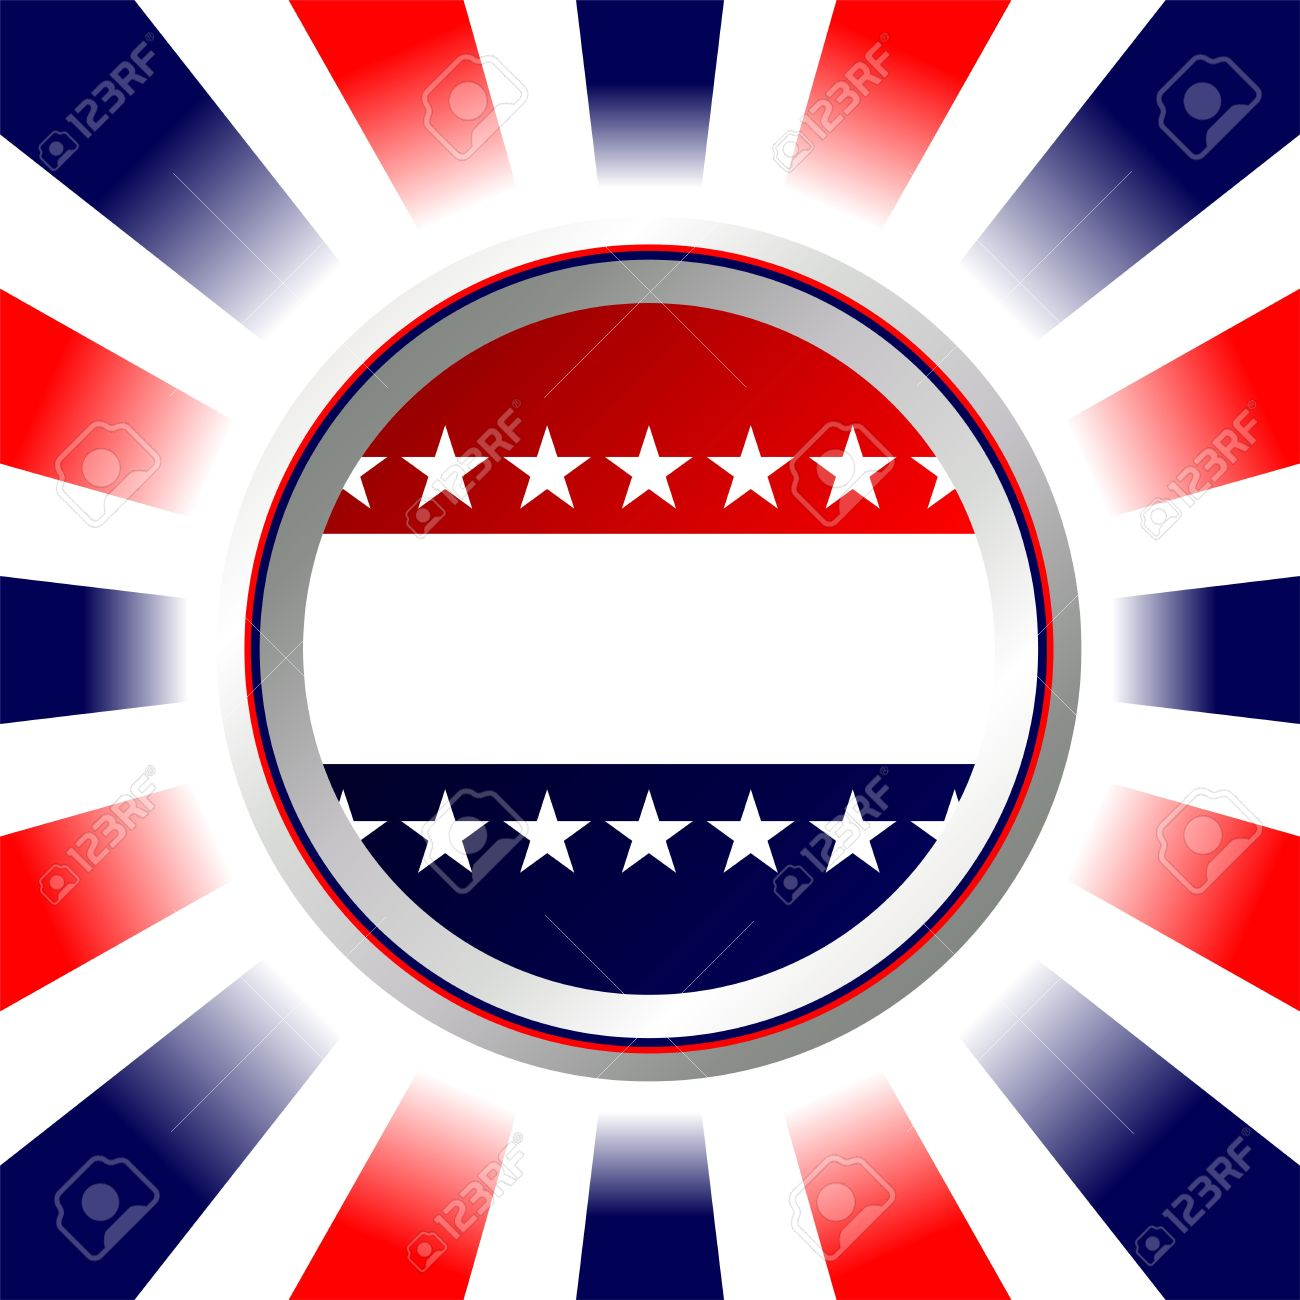 Election Poster Or Fourth Of July Background. United States Colors ...